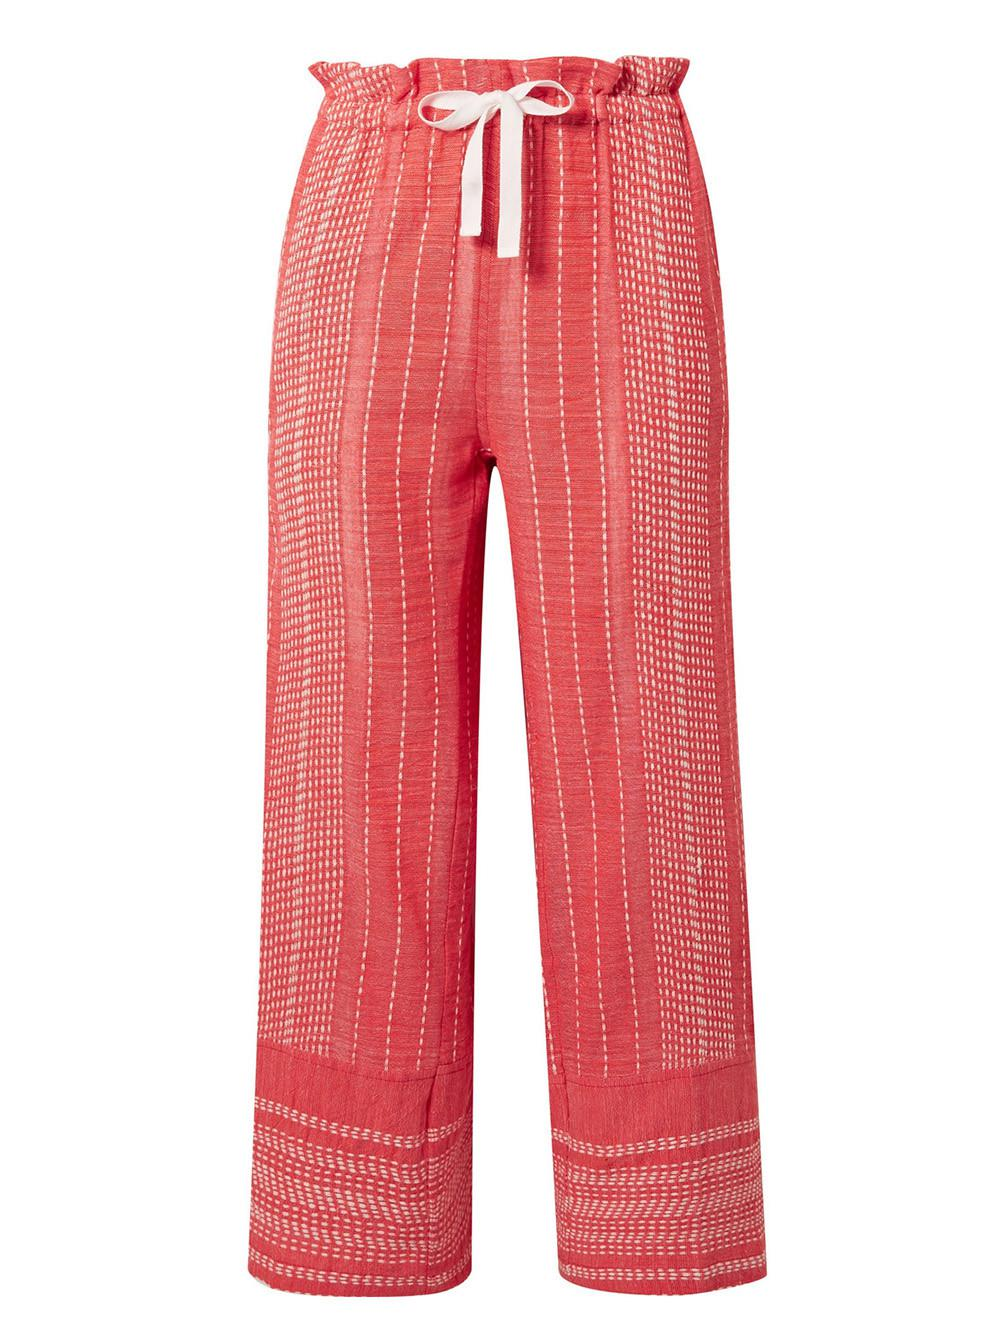 Lemlem wide leg trousers Sale Best Prices Clearance Get Authentic Clearance Footlocker Finishline aAhllBfp